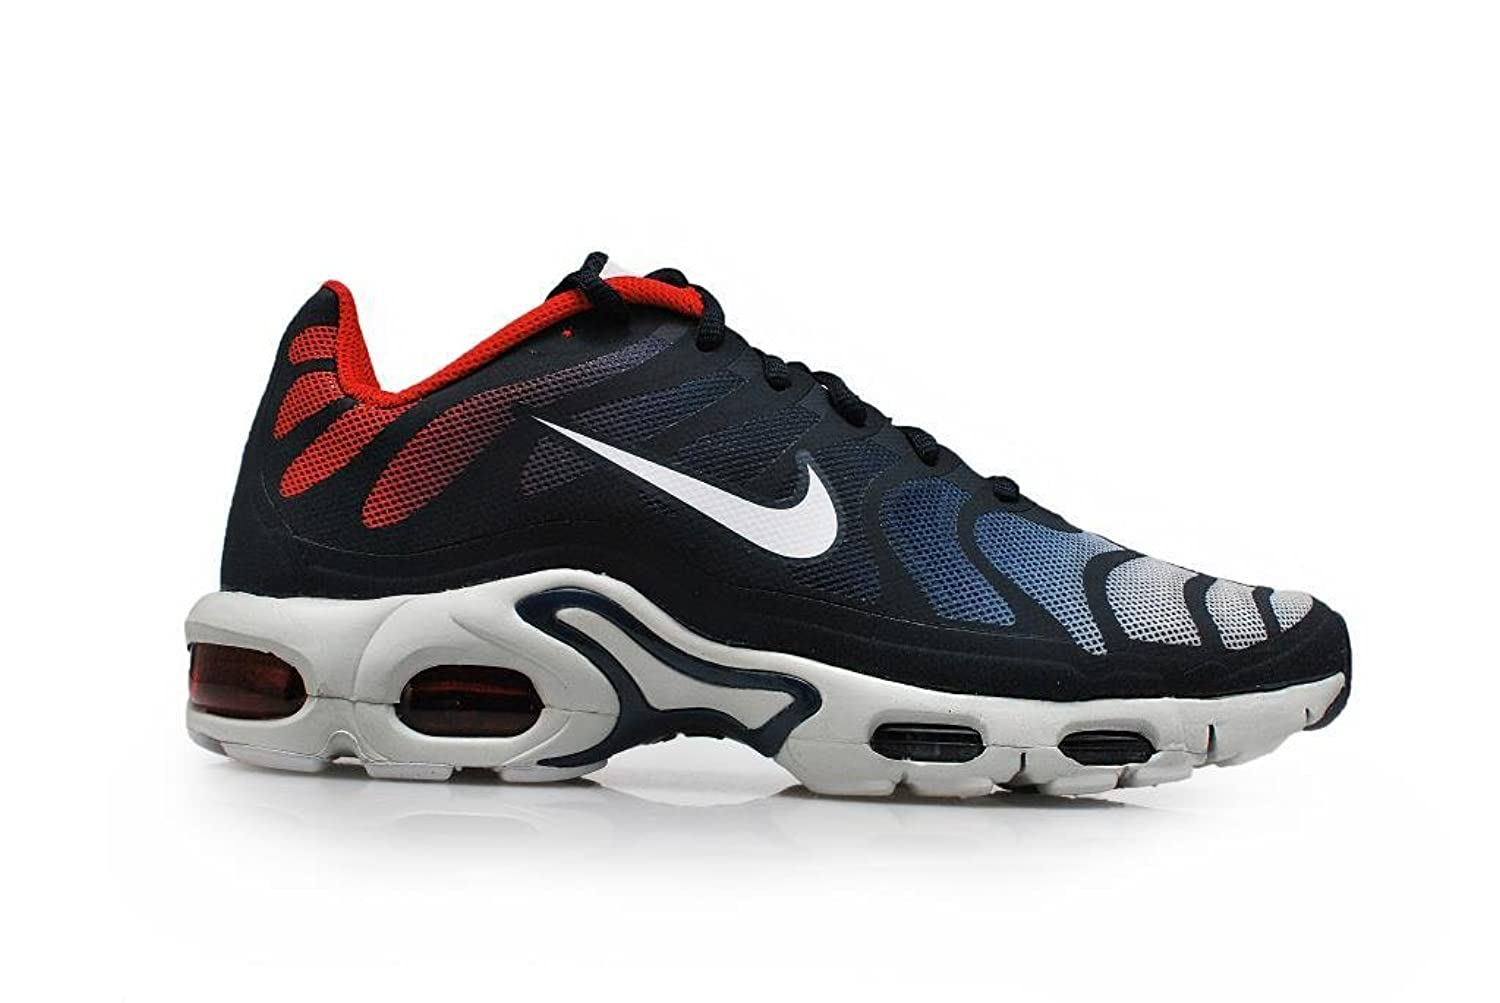 sports shoes 1a502 1fb6f nike air max plus fuse TN tuned hyperfuse mens trainers 483553 sneakers  shoes (uk 6 us 7 eu 40, midnight navy white university red 416) | $139.95 -  ...